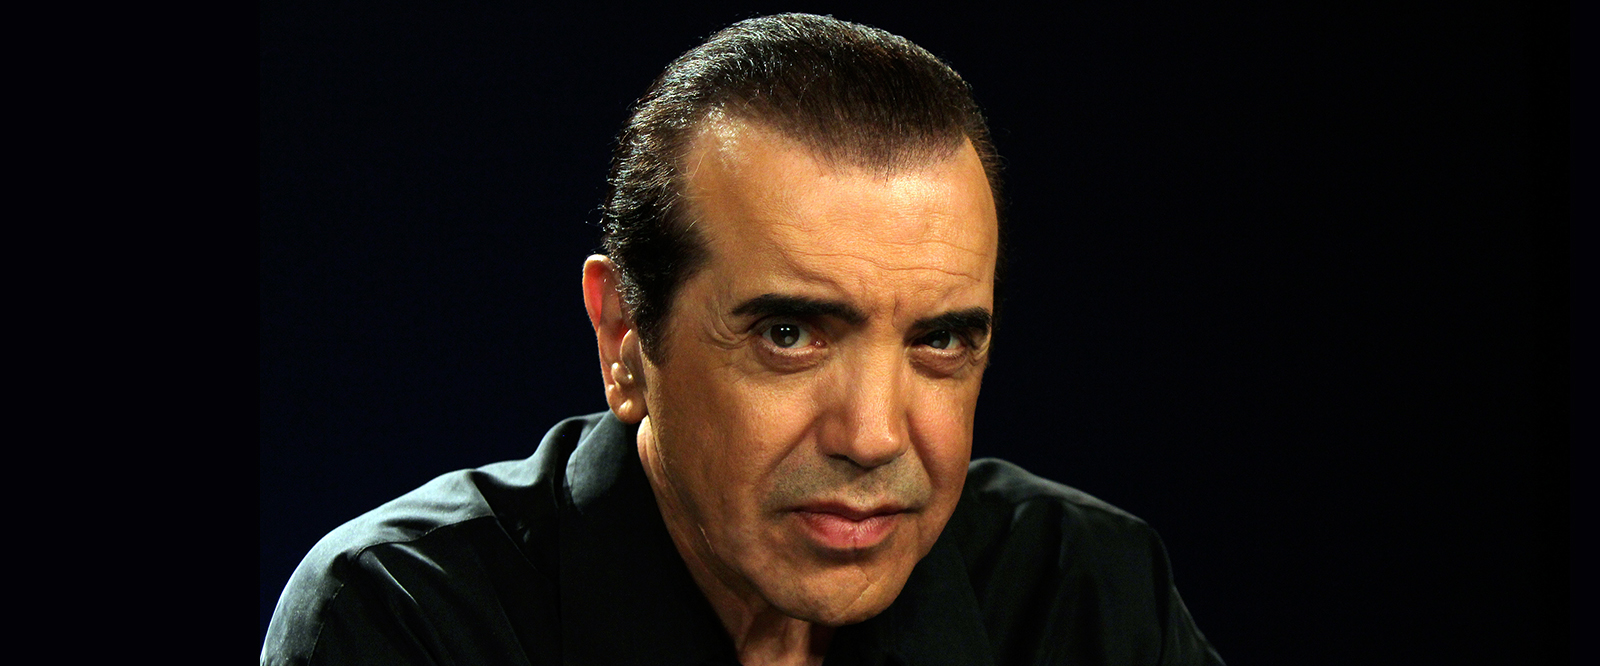 Chazz Palminteri hd wallpaper Wallpaper